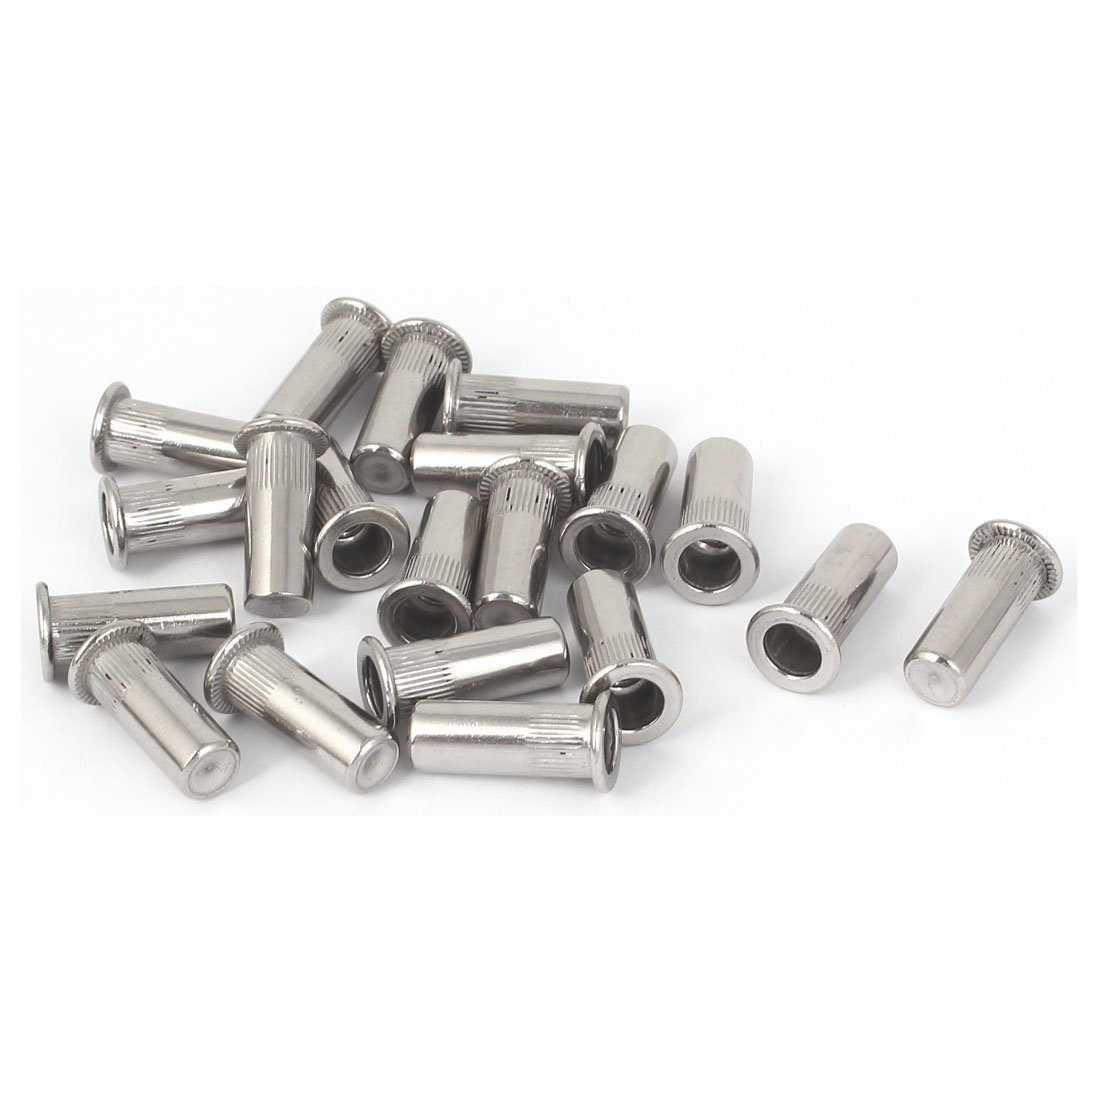 Uxcell a16070700ux0252 Closed End Rivet Nut M5X18.5Mm 304 Stainless Steel Straight Knurled Closed End Rivet Nut Fastener 20Pcs